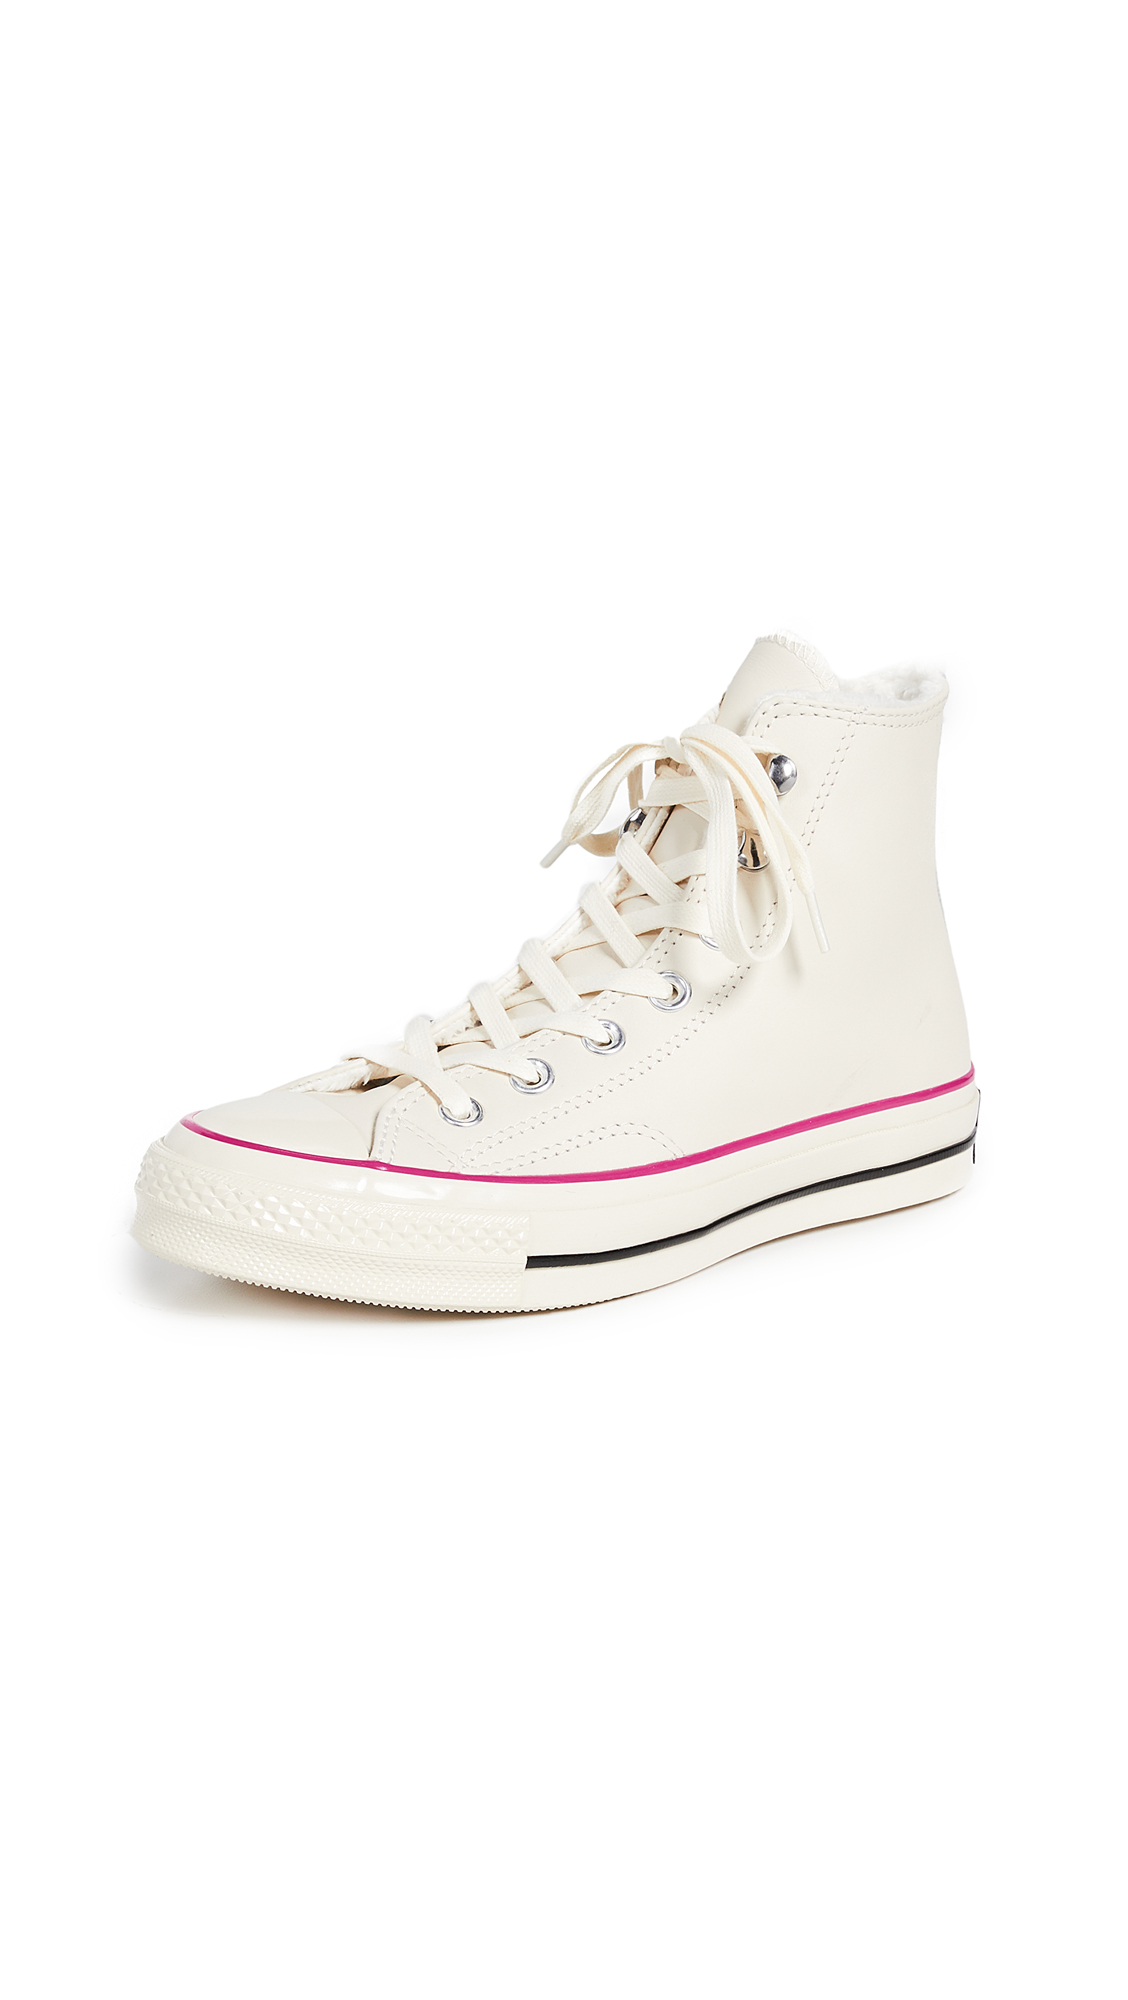 Converse Chuck 70 Leather Hi Top Sneakers - Natural/Ivory